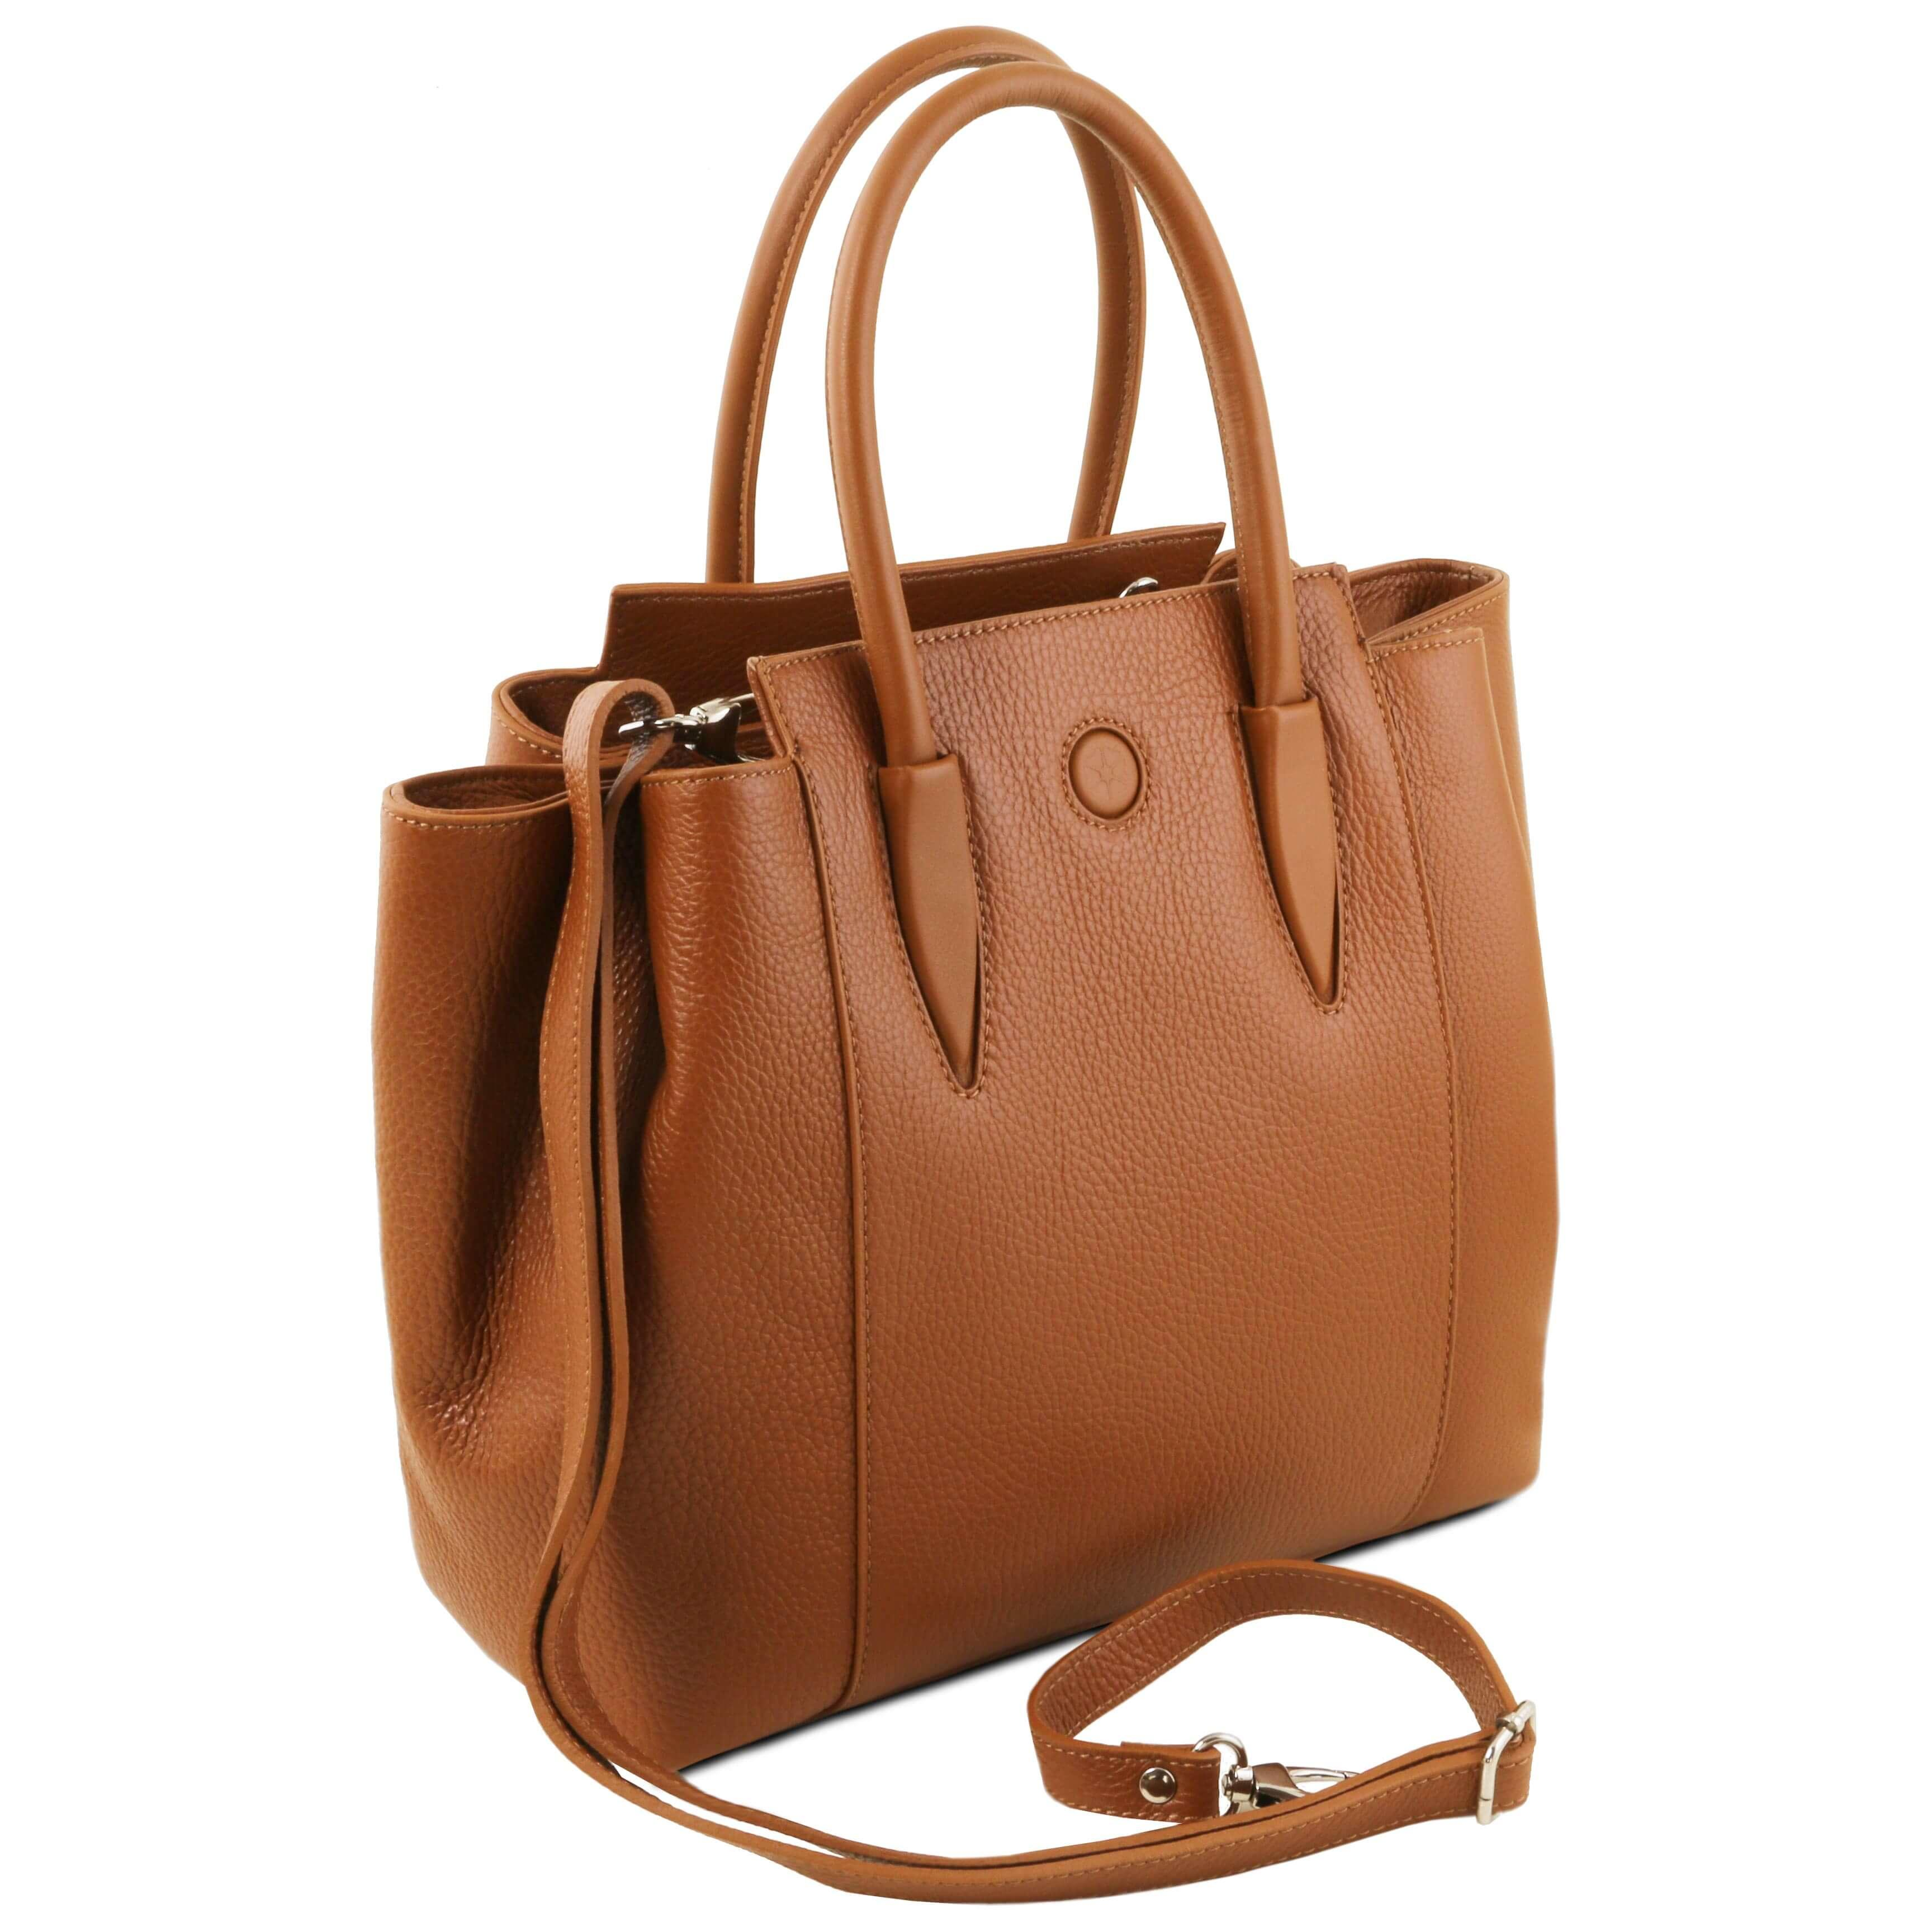 TL141727 Tuscany Leather Tulipan Handbag With Detachable Shoulder Strap